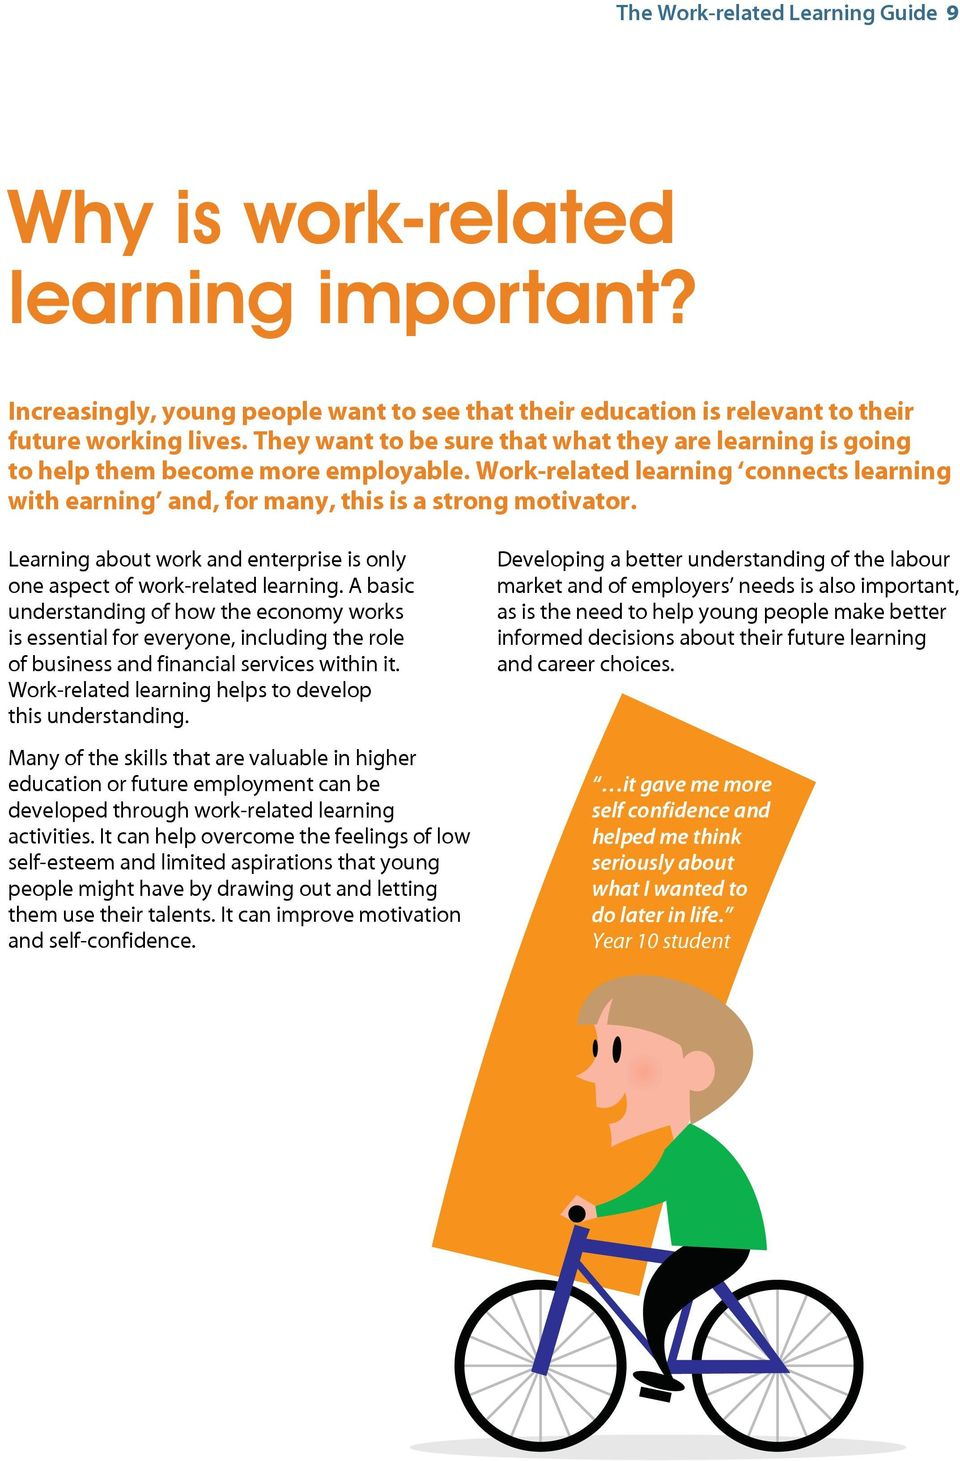 Learning about work and enterprise is only one aspect of work-related learning.